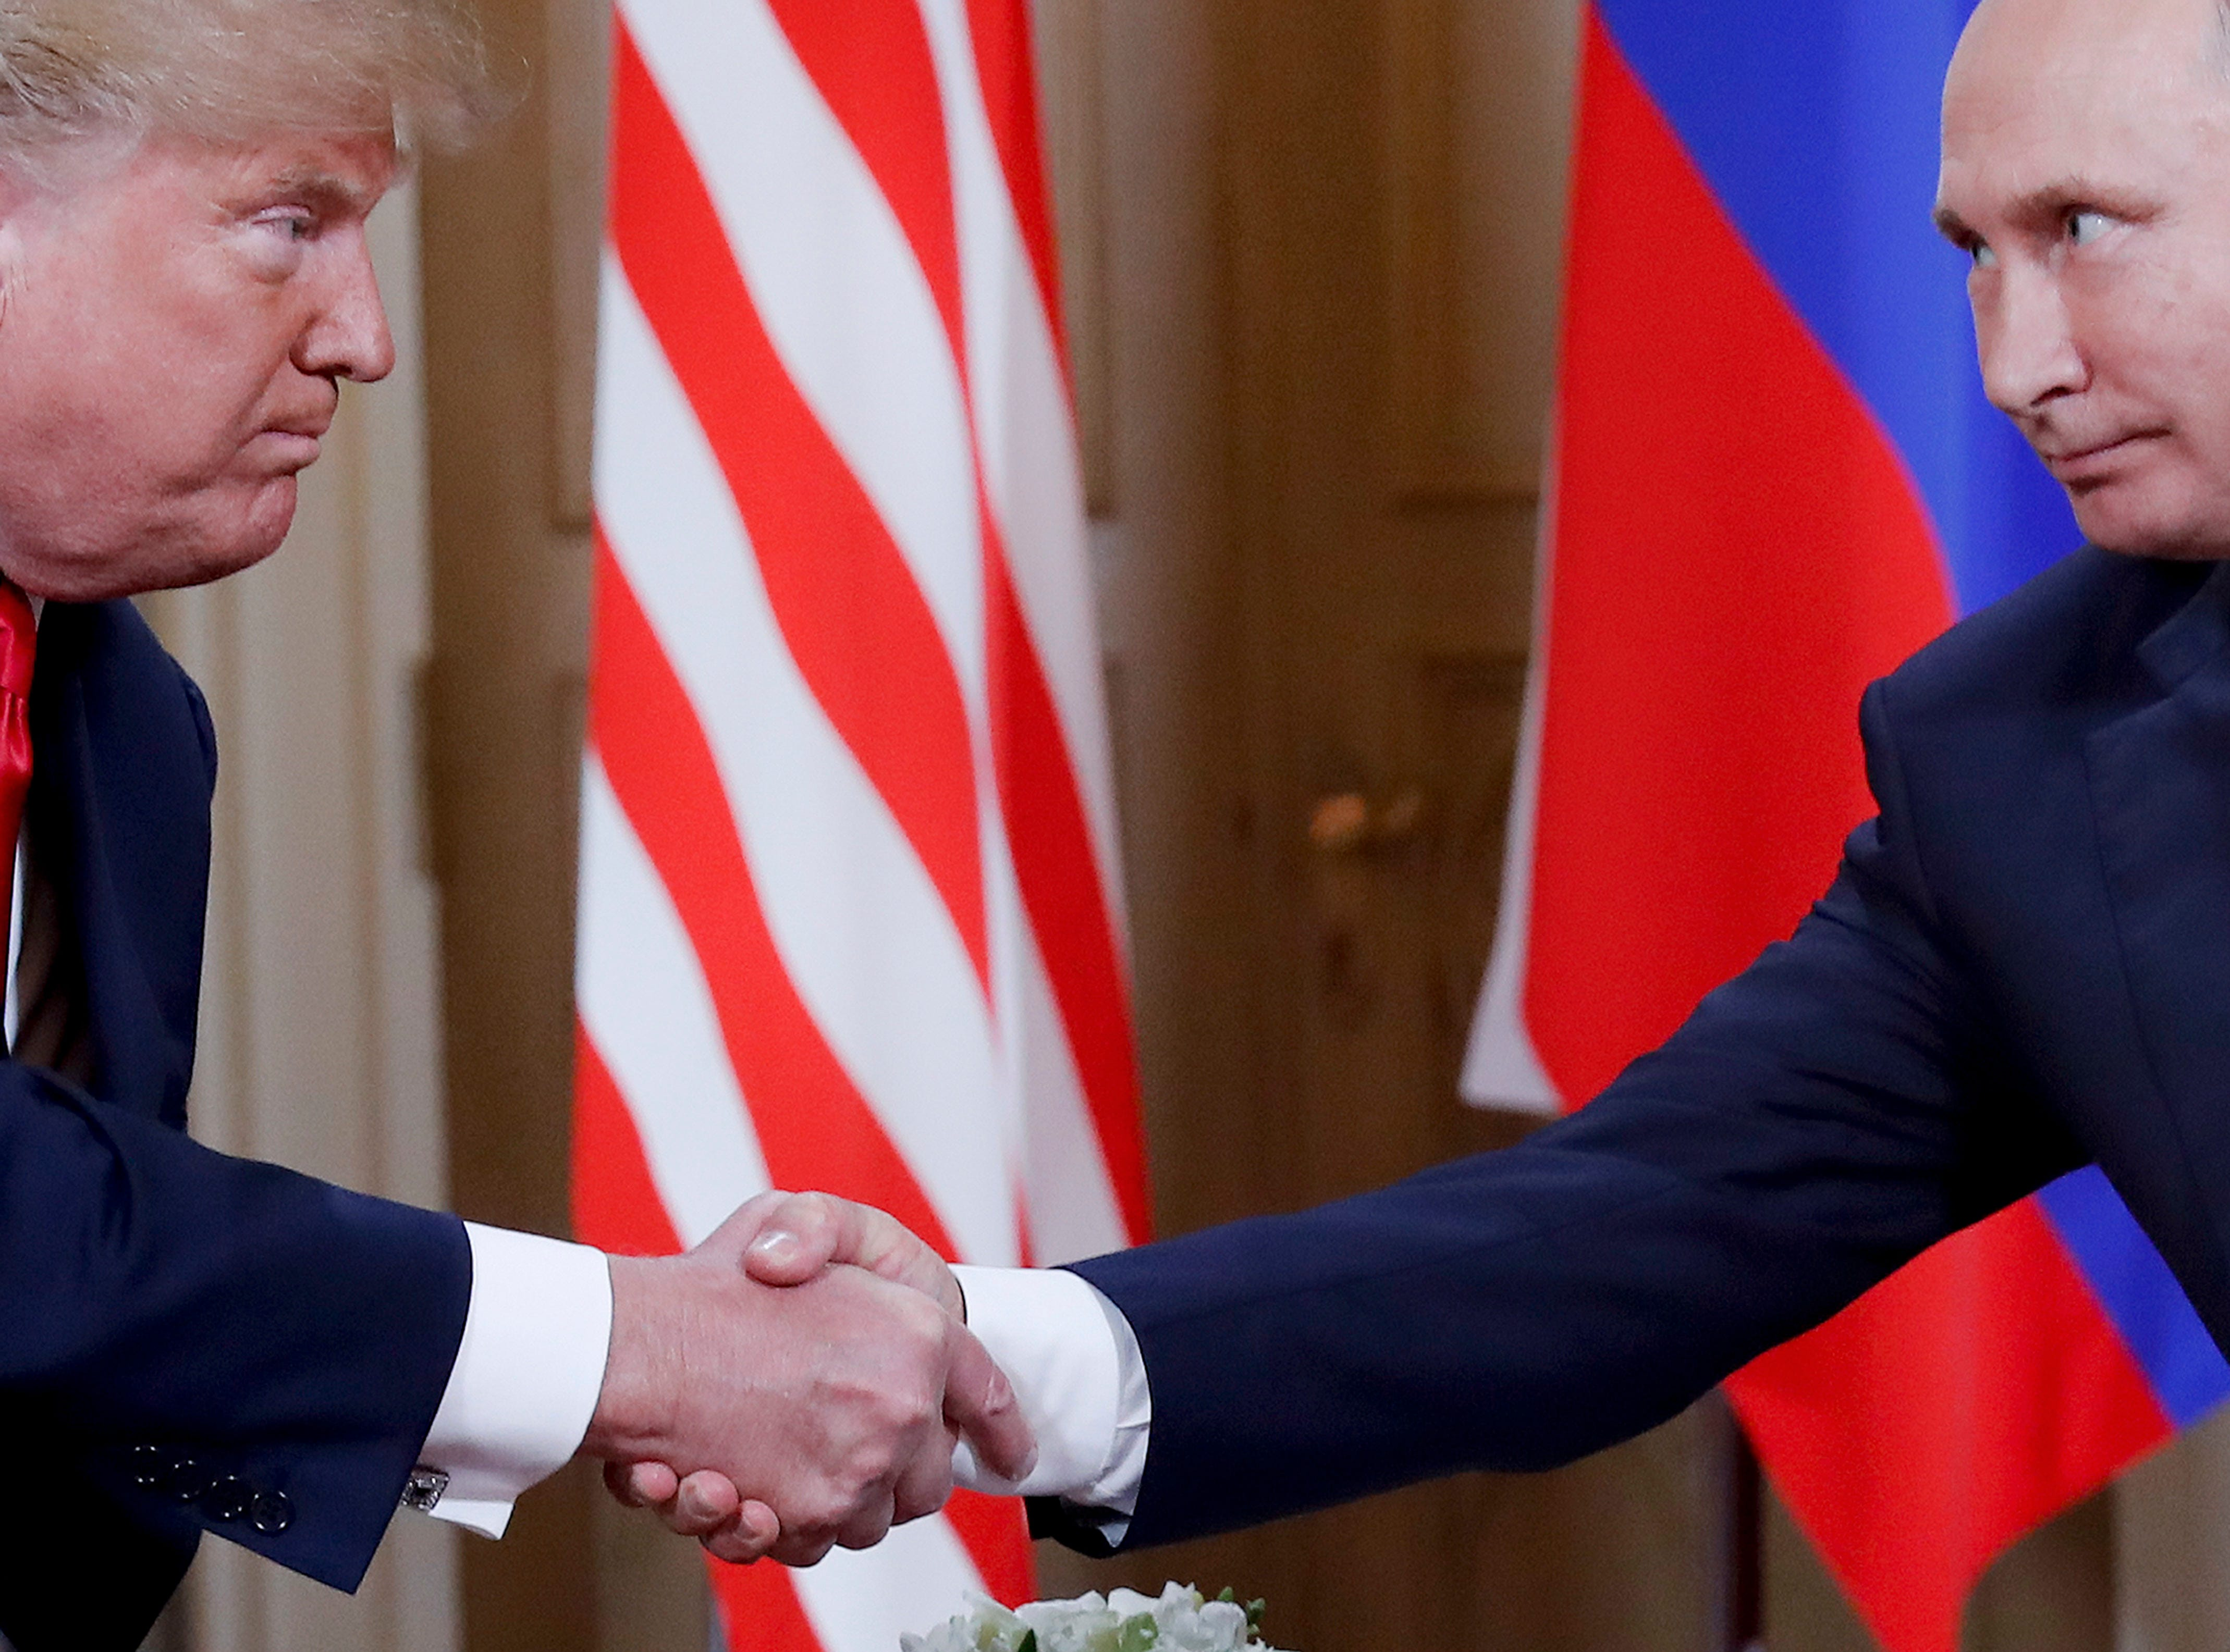 U.S. President Donald Trump and Russian President Vladimir Putin shake hands at the beginning of a meeting at the Presidential Palace in Helsinki, Finland, Monday, July 16, 2018.